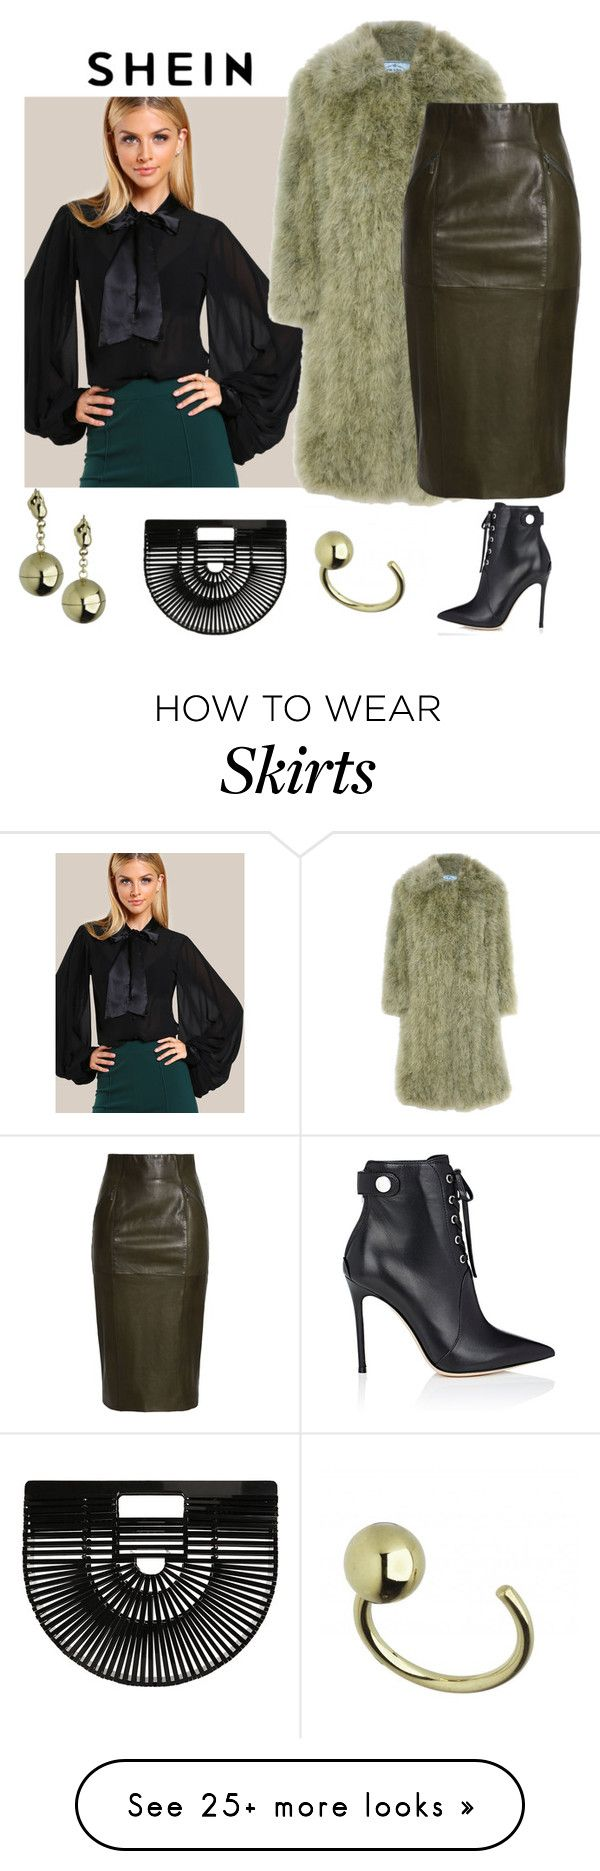 """outfit 7592"" by natalyag on Polyvore featuring Prada, Amanda Wakeley, Gianvito Rossi, Cult Gaia and Caterina Zangrando"